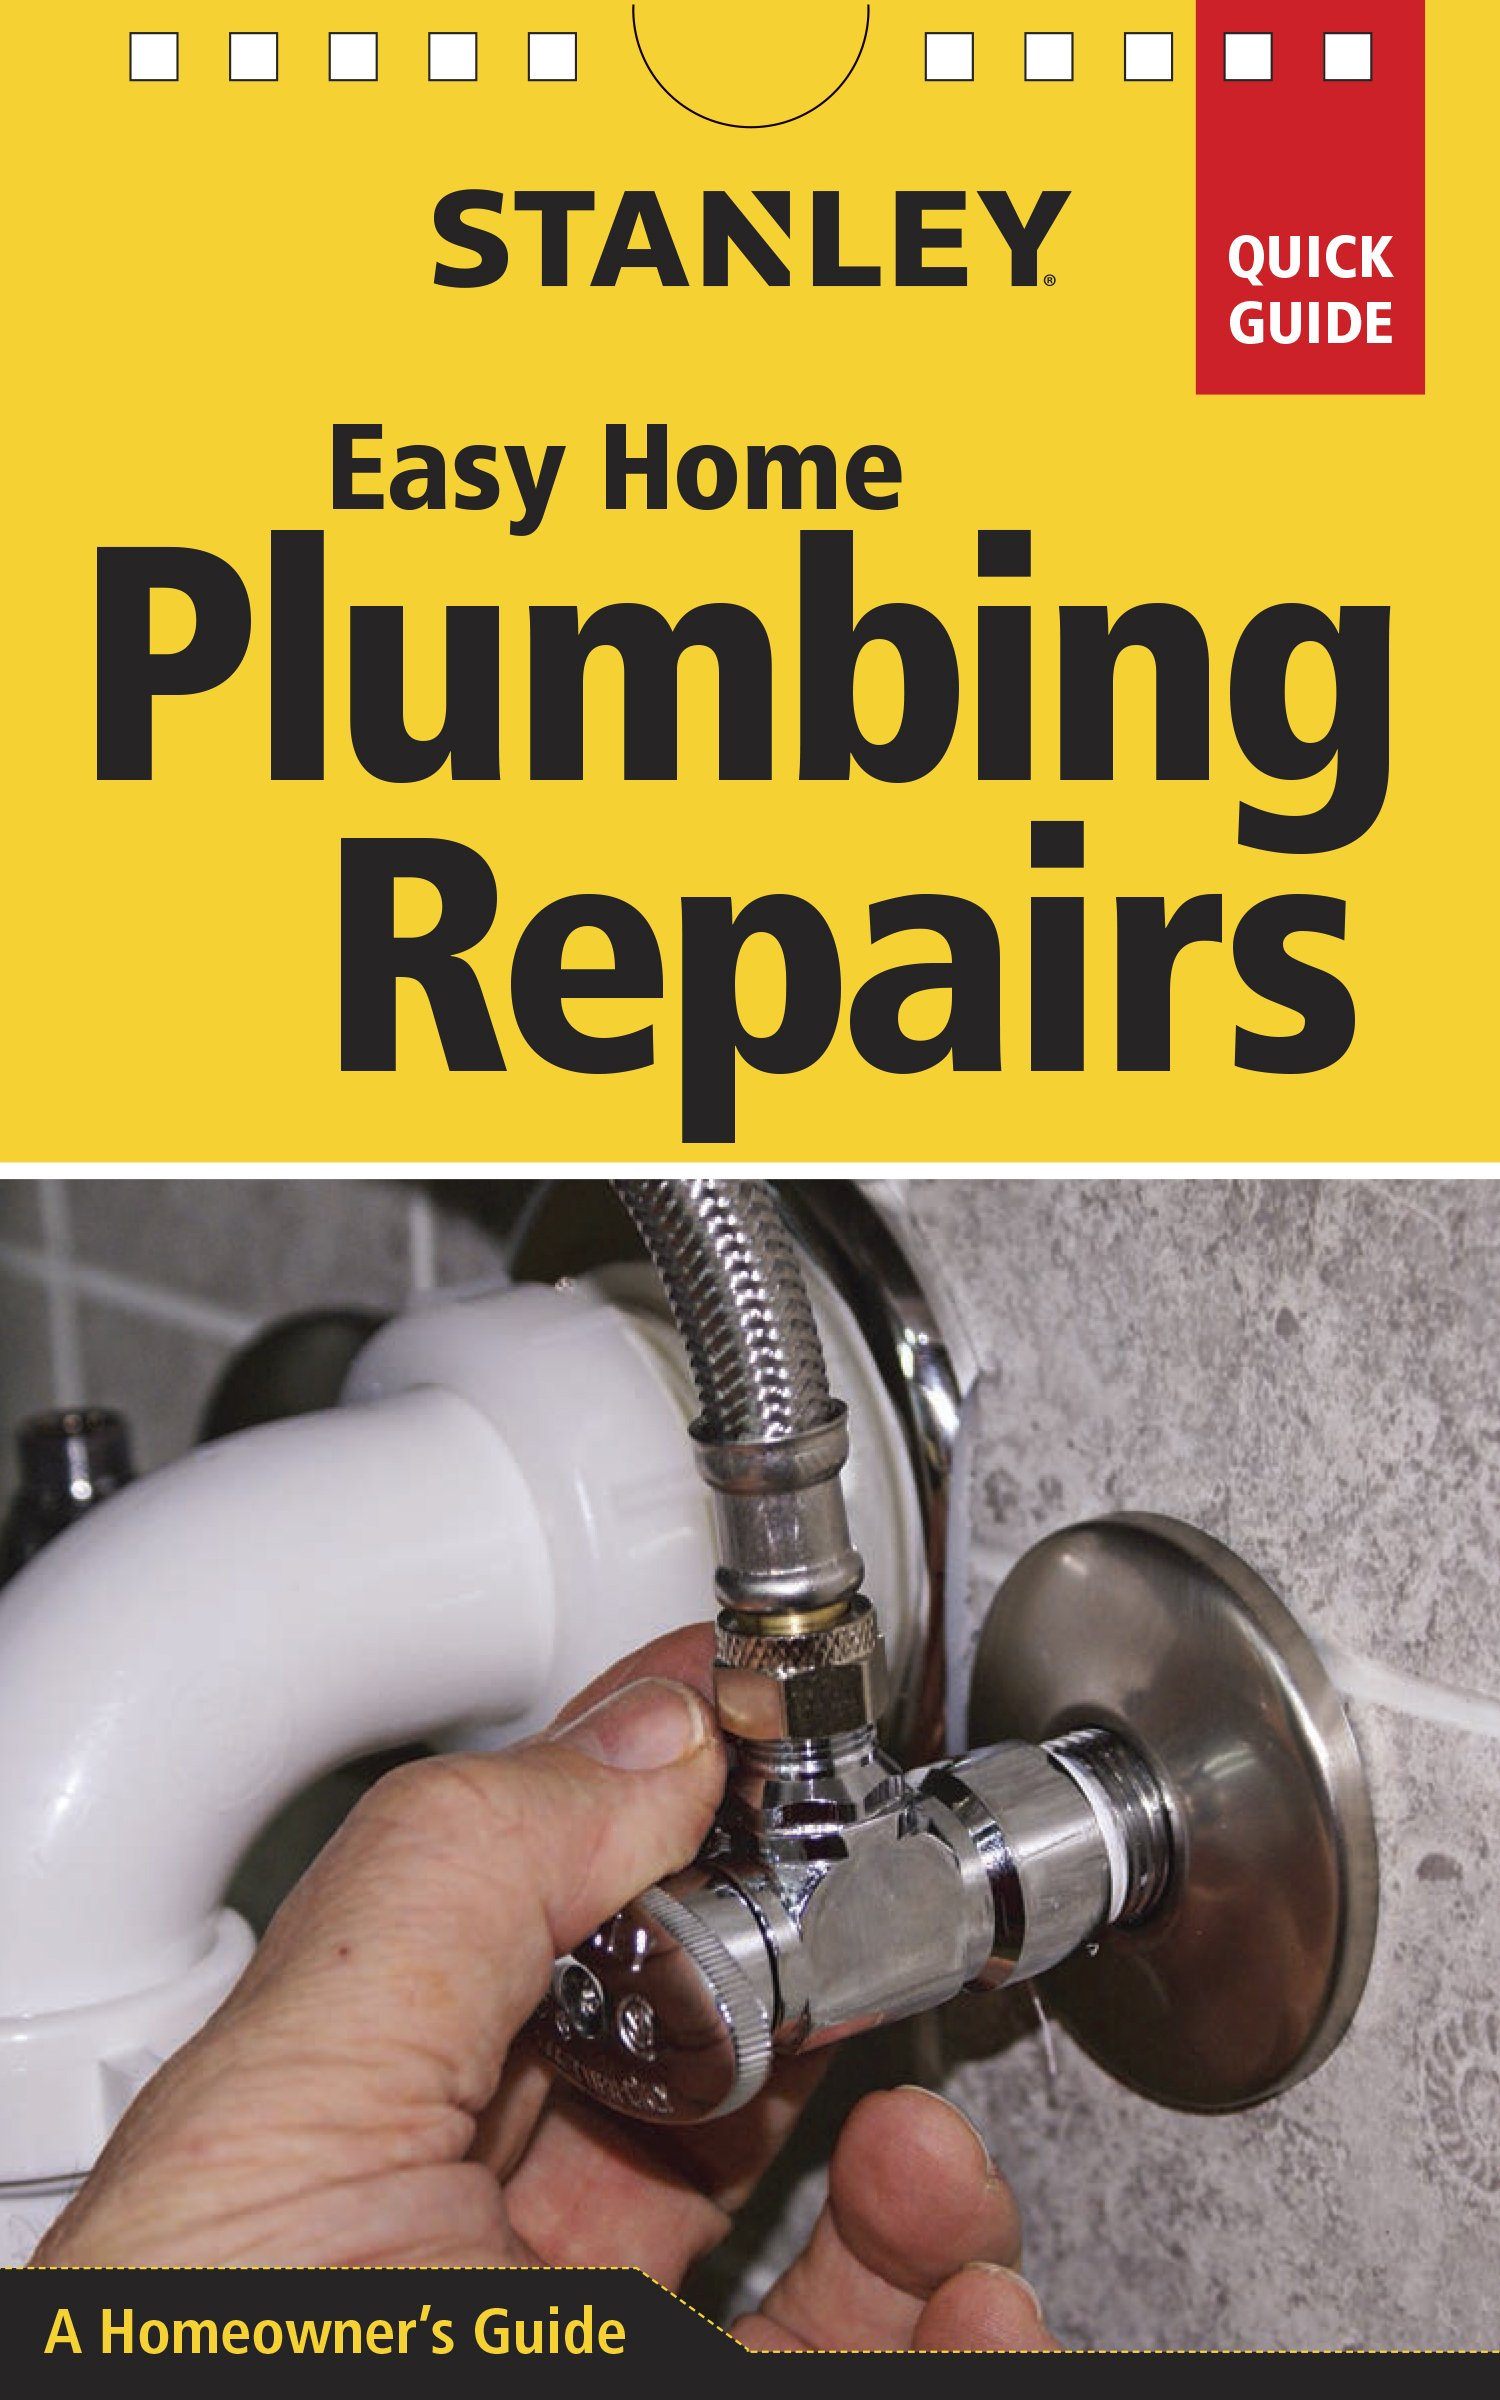 stanley-easy-home-plumbing-repairs-stanley-quick-guide